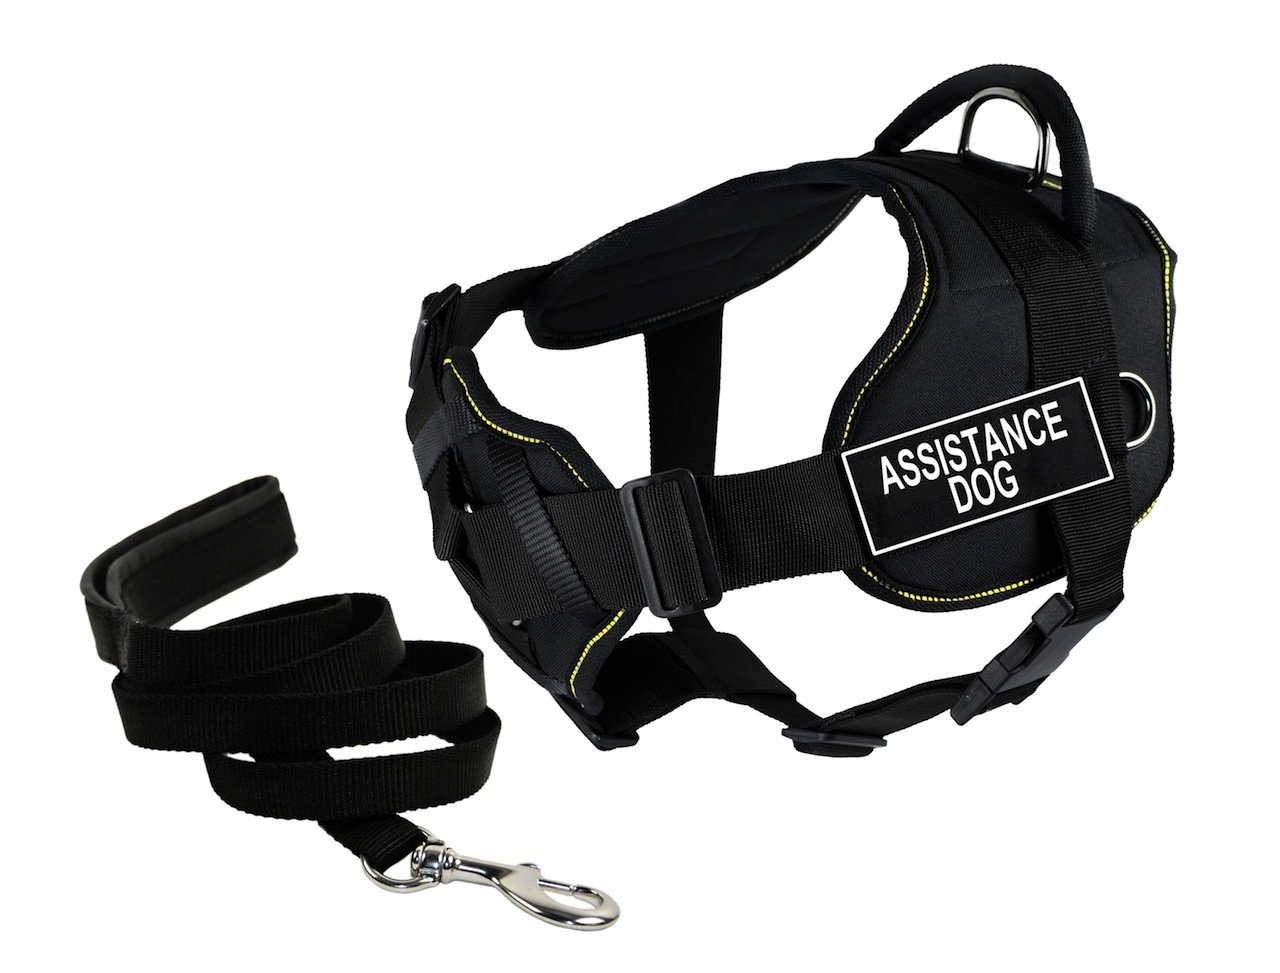 Dean & Tyler's DT Fun Chest Support Assistance Dog  Harness, Small, with 6 ft Padded Puppy Leash.